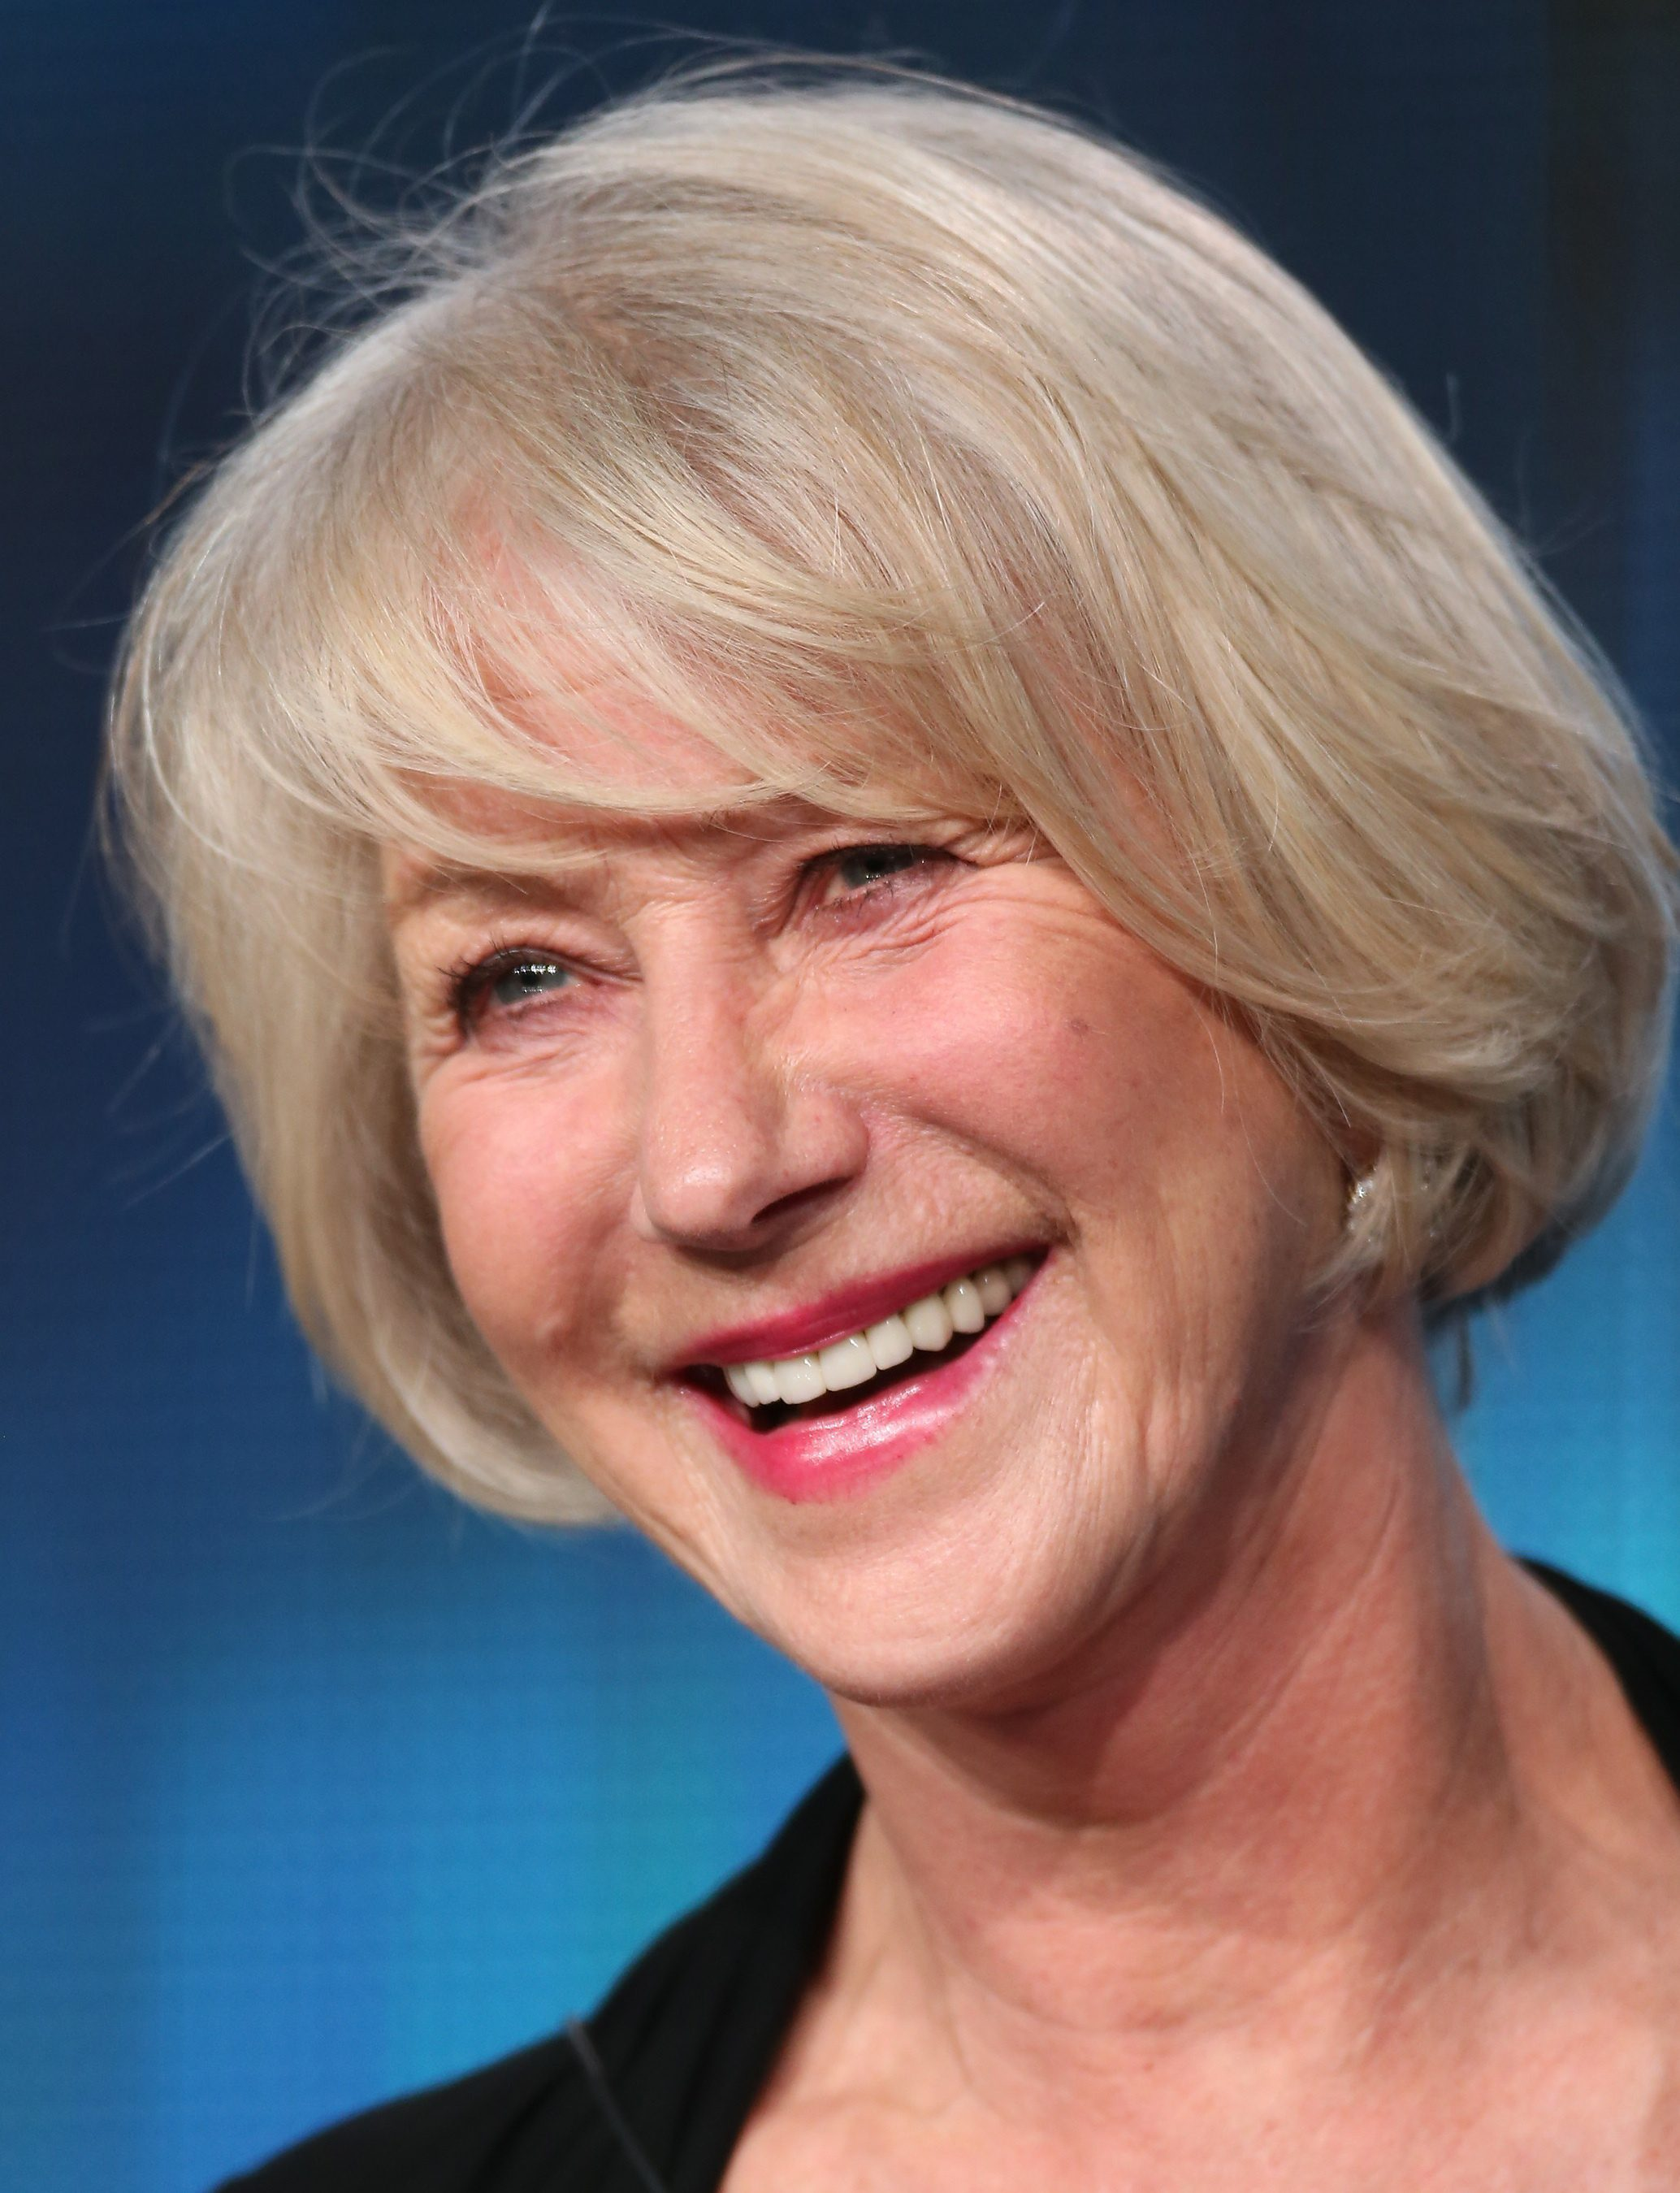 Hairstyles for Older Women Helen Mirren